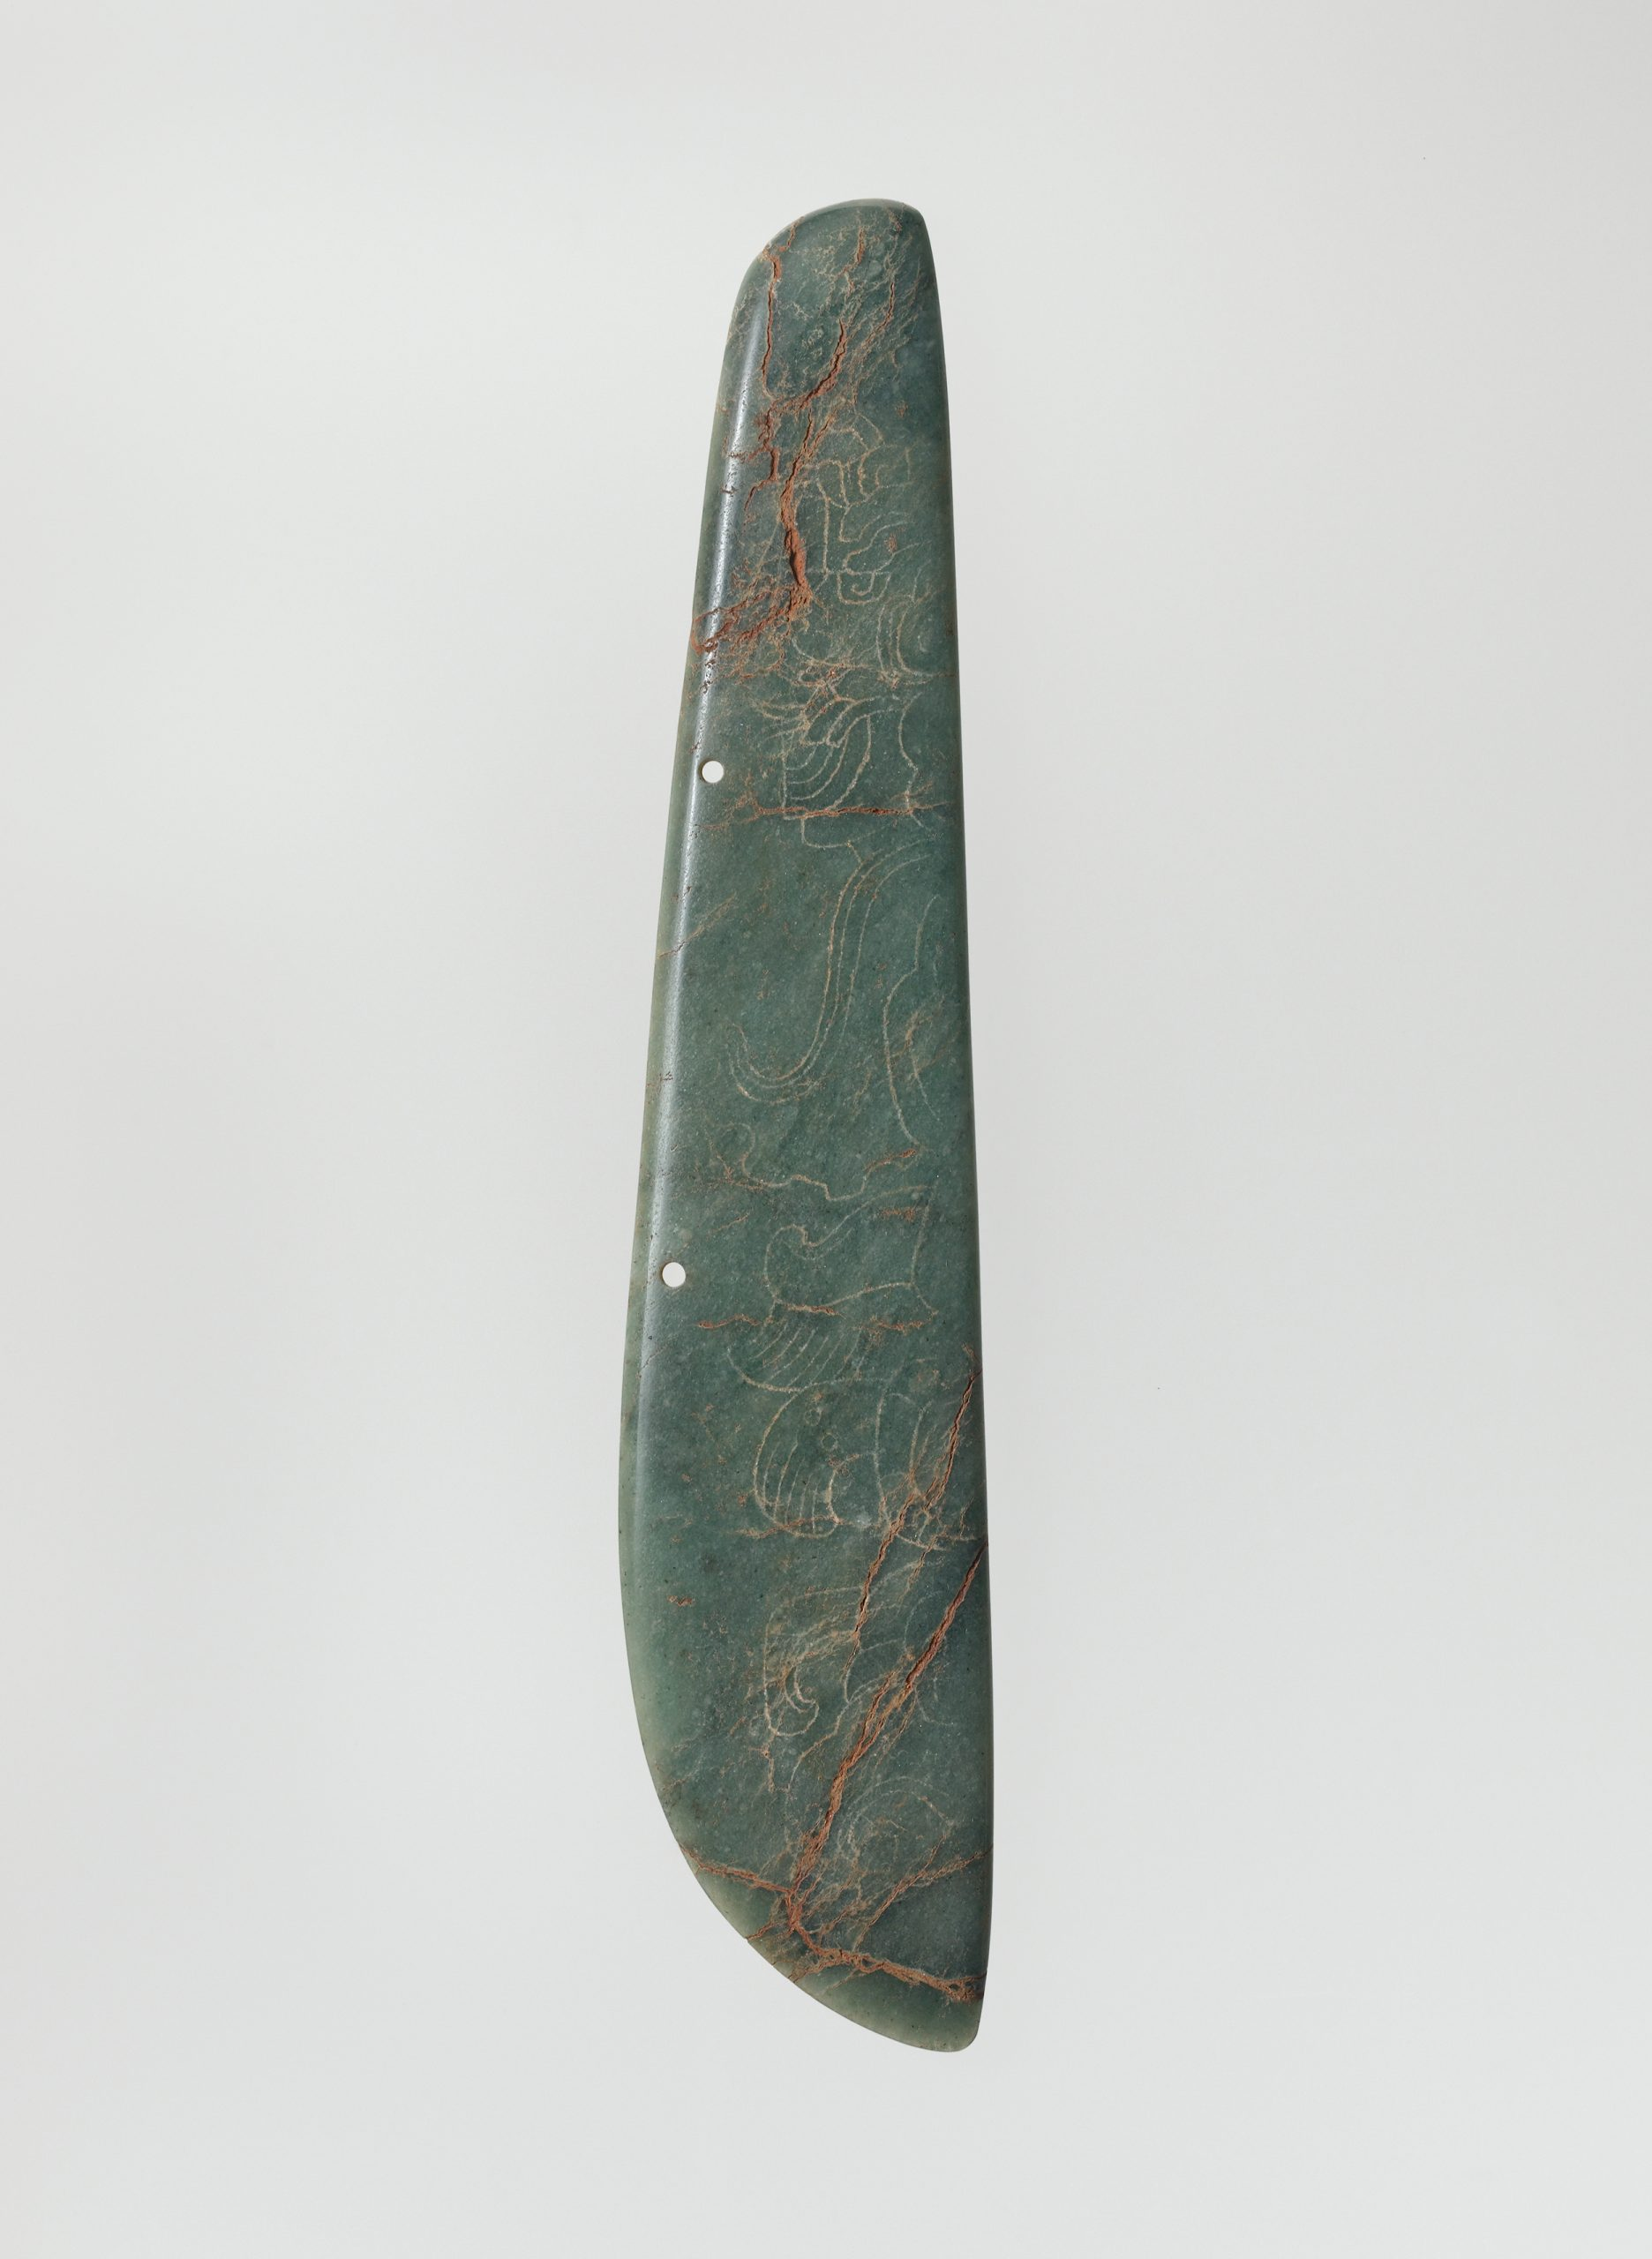 Pendant-like sculpture with engraved figures in elaborate feather headdresses and flowing garments.